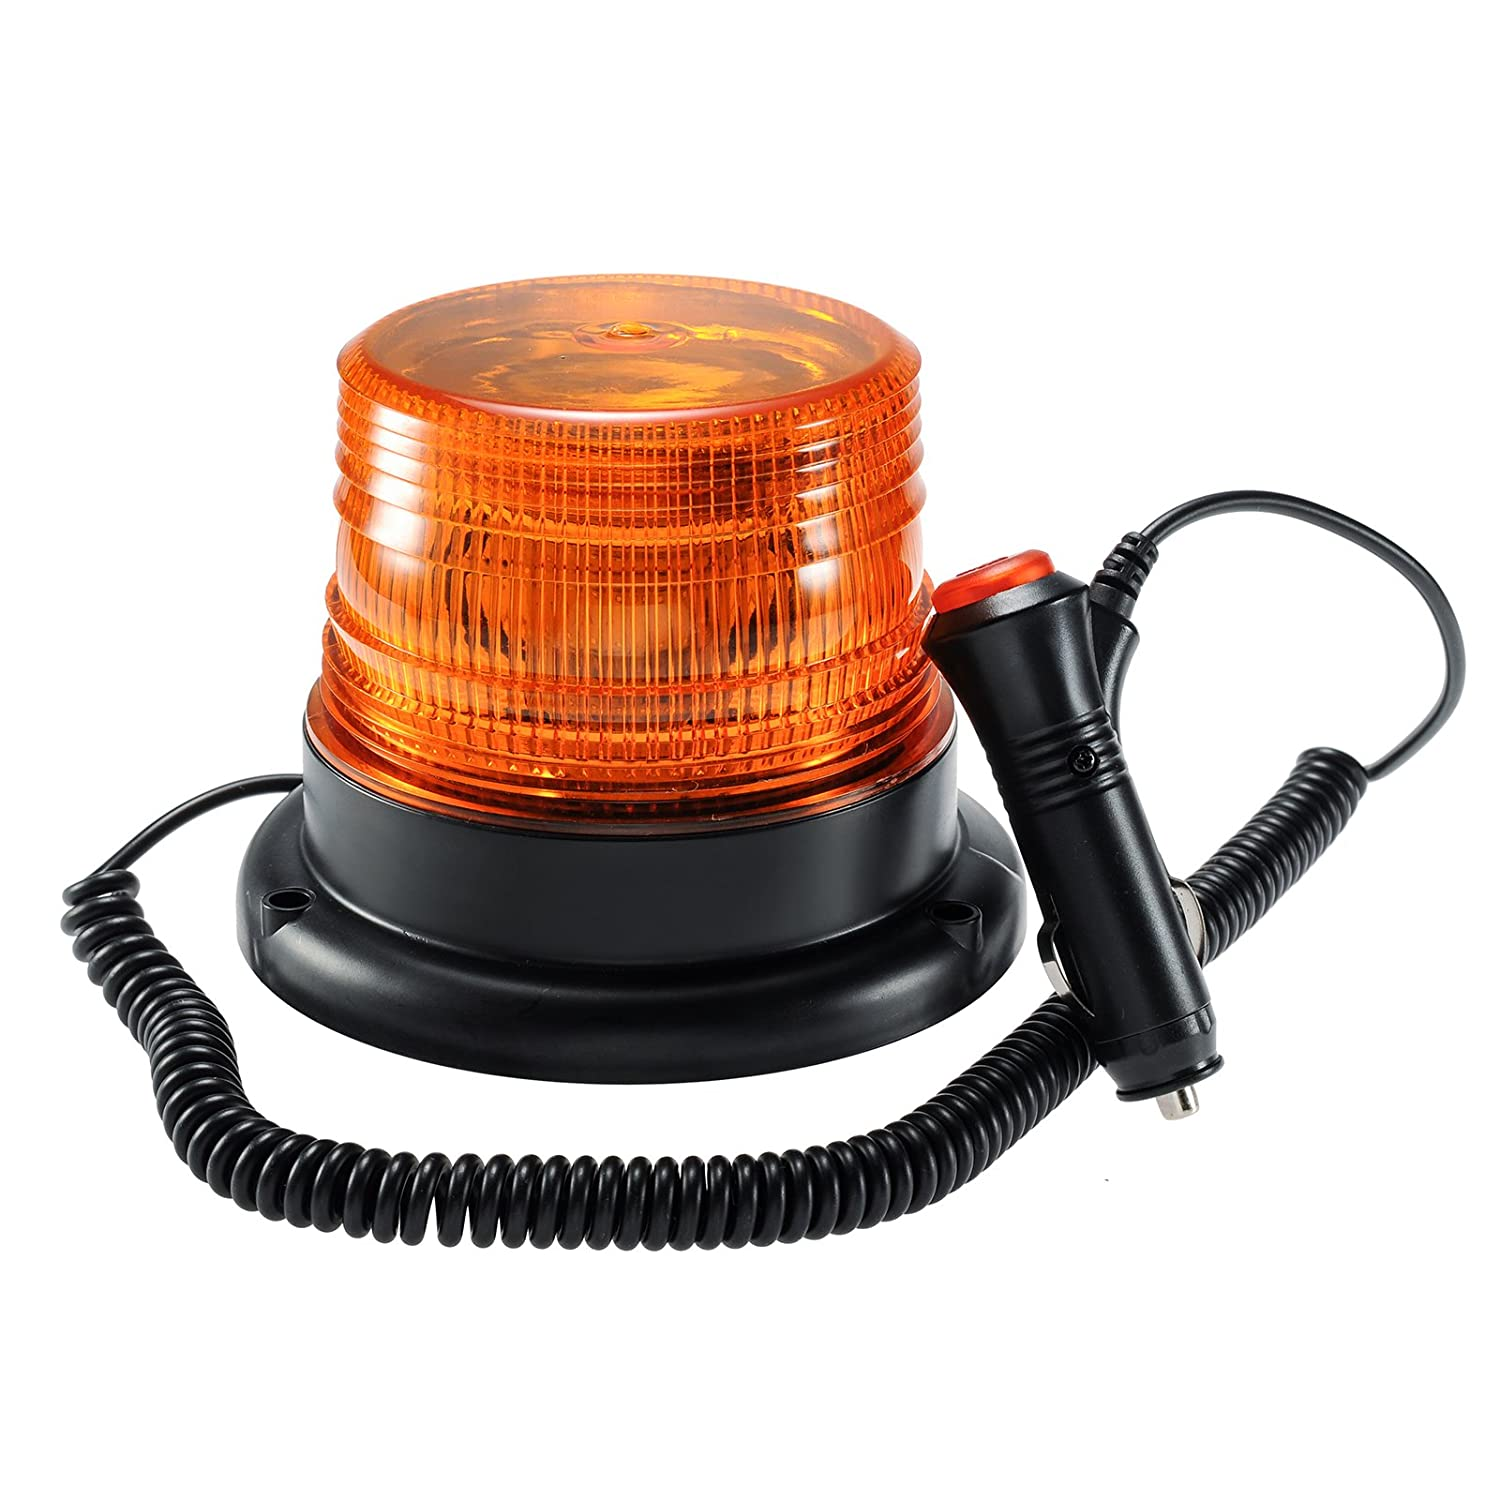 Led Strobe Light, AnTom Amber Emergency Magnetic Flashing Warning Beacon High Intensity Law Enforcement Hazard Warning Wireless Lamp with Magnetic Base (12 LED Wireless)